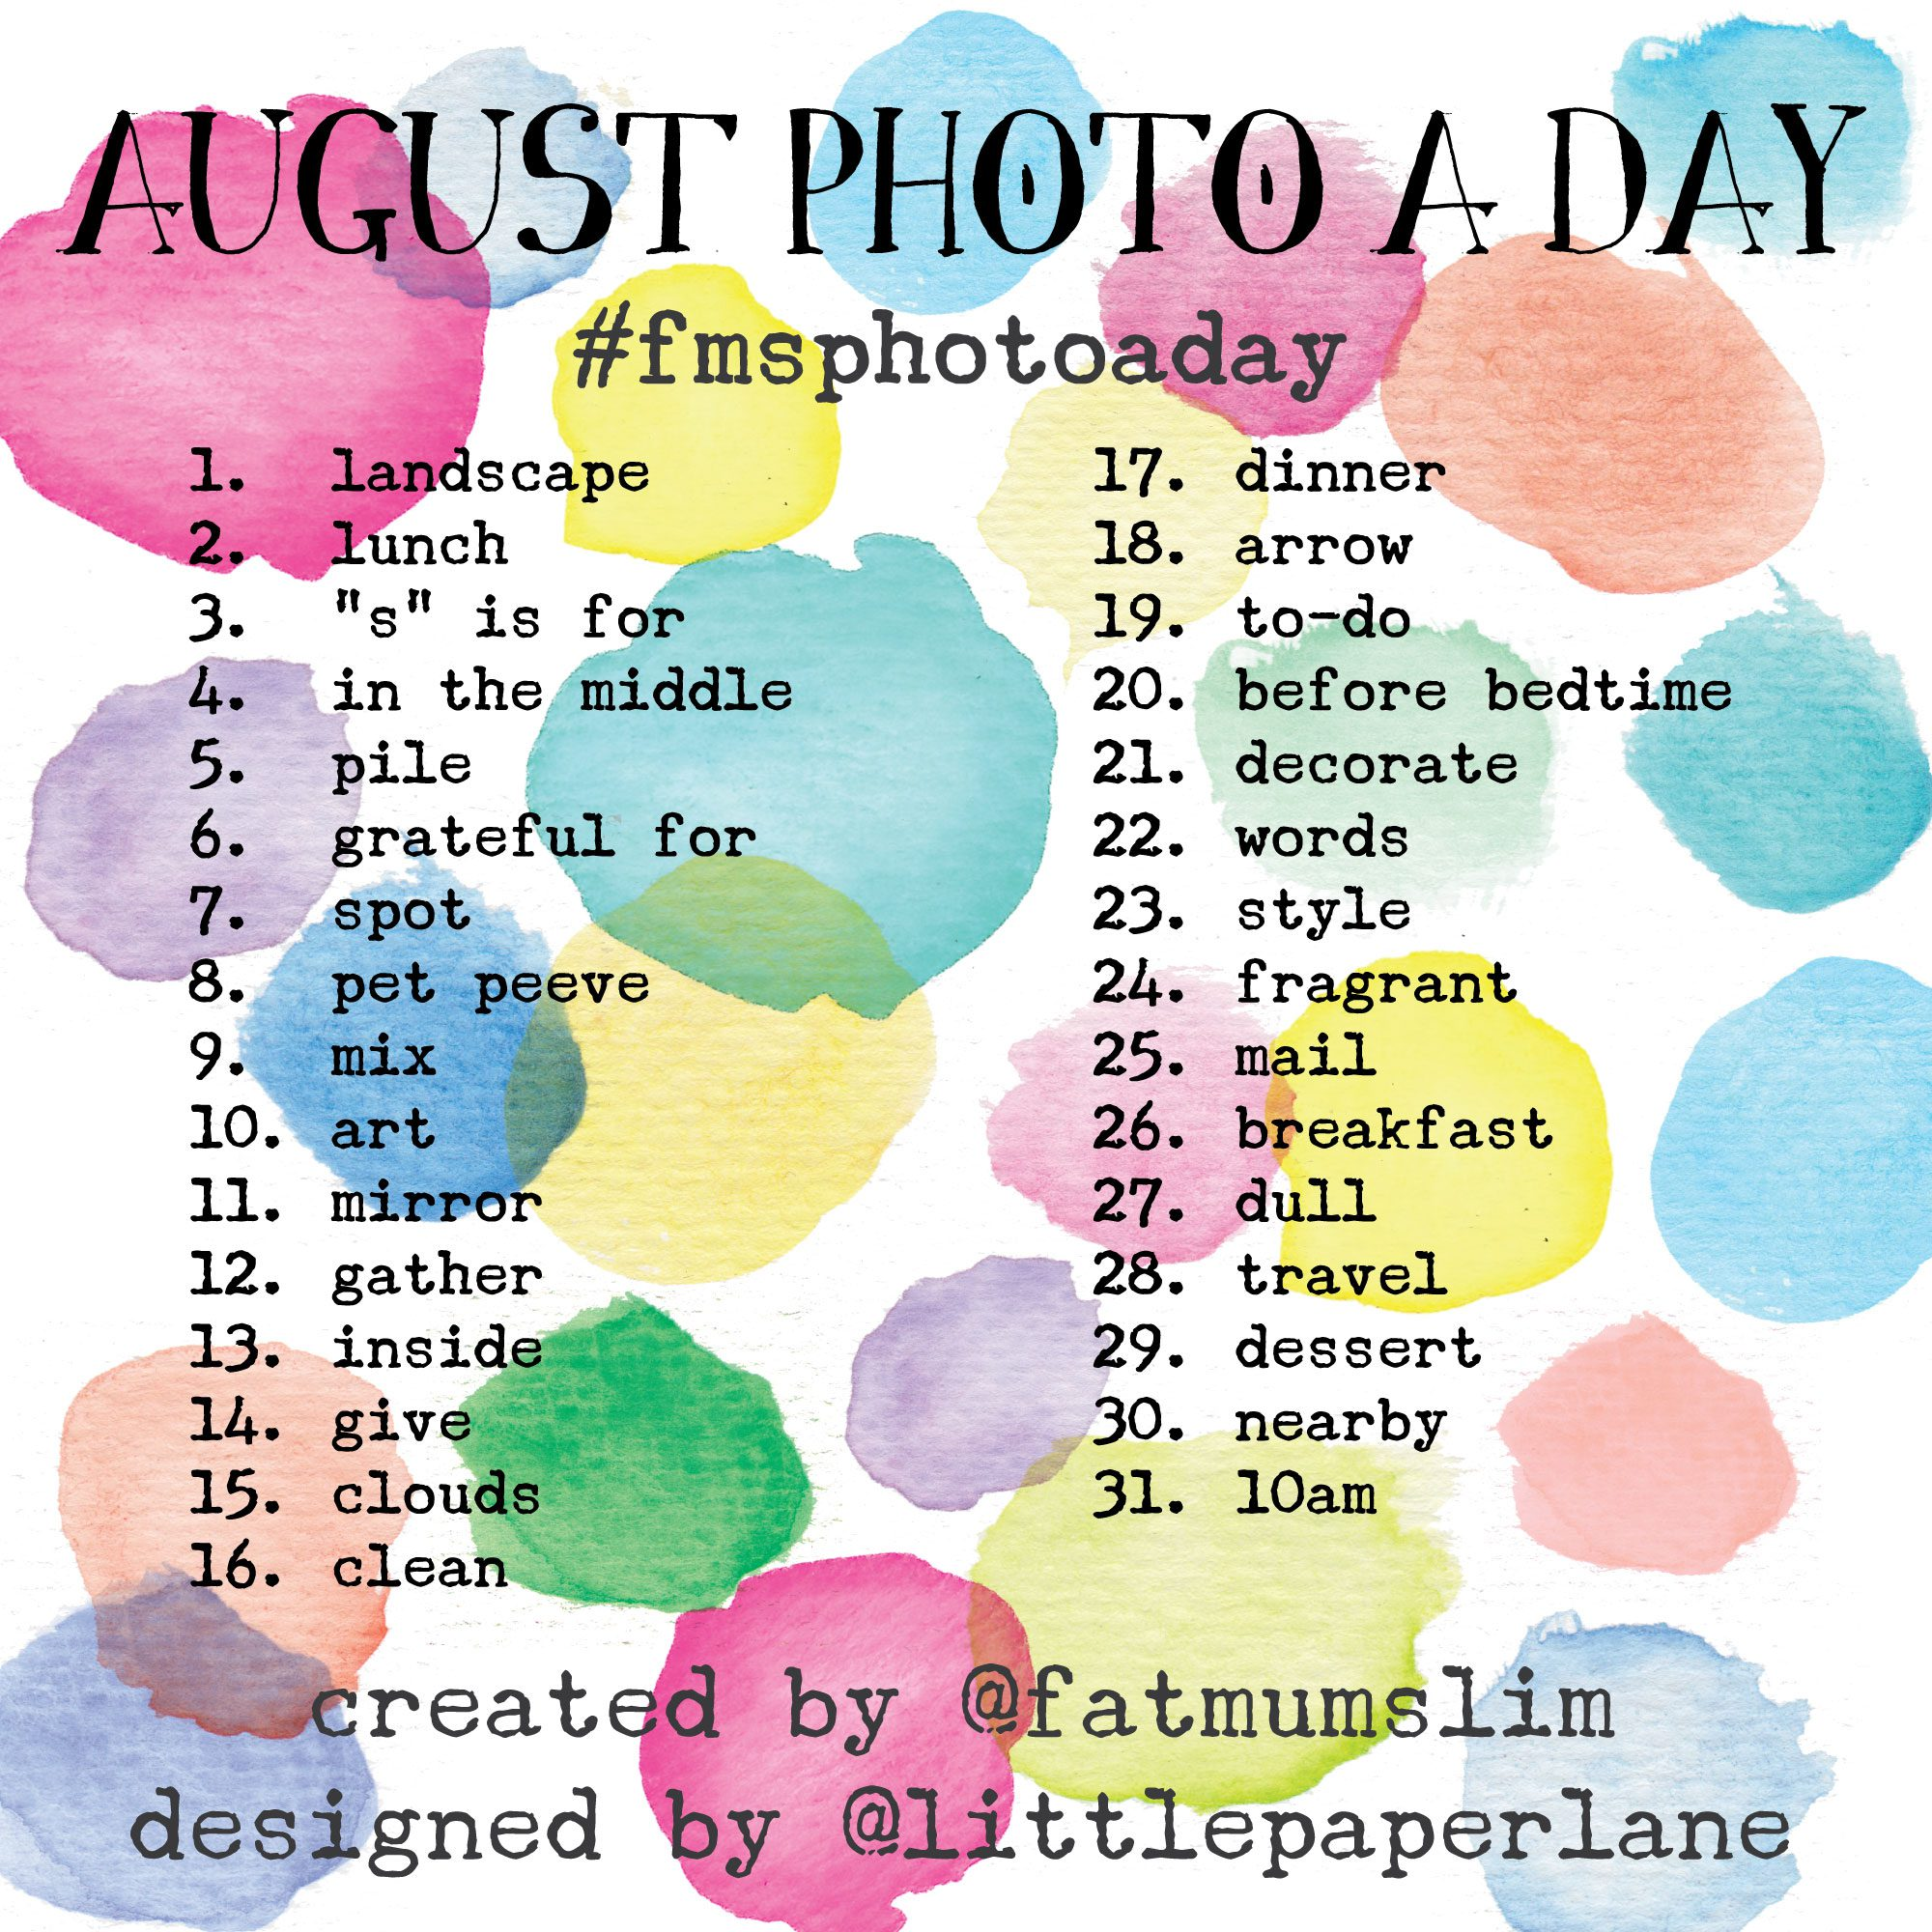 PHOTO A DAY JULY